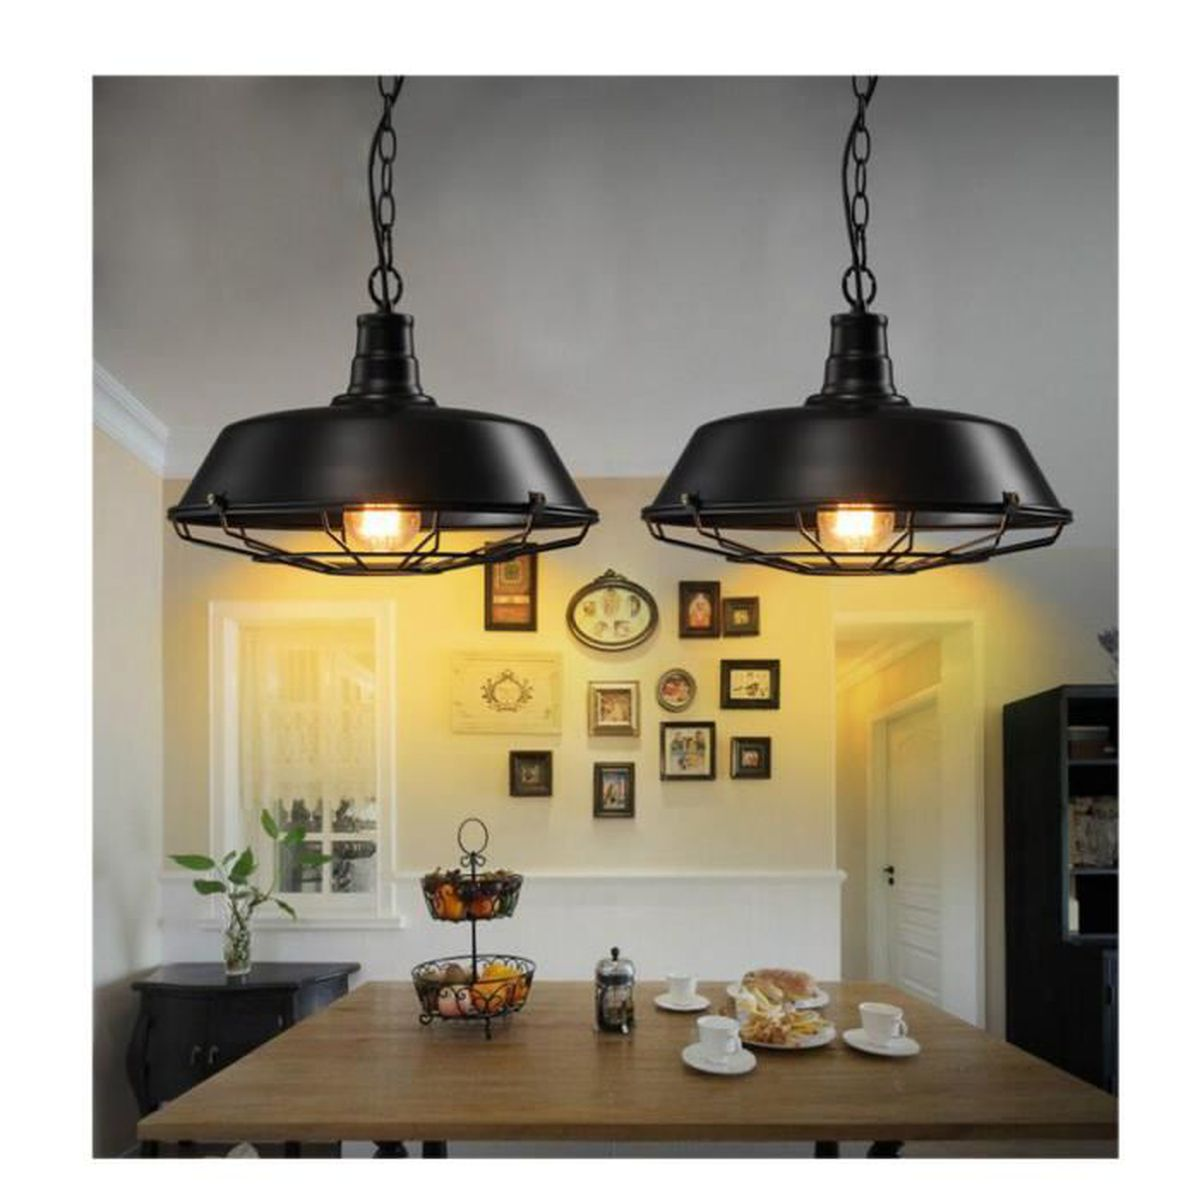 lampe suspension vintage lampe suspension vintage with lampe suspension vintage latest. Black Bedroom Furniture Sets. Home Design Ideas